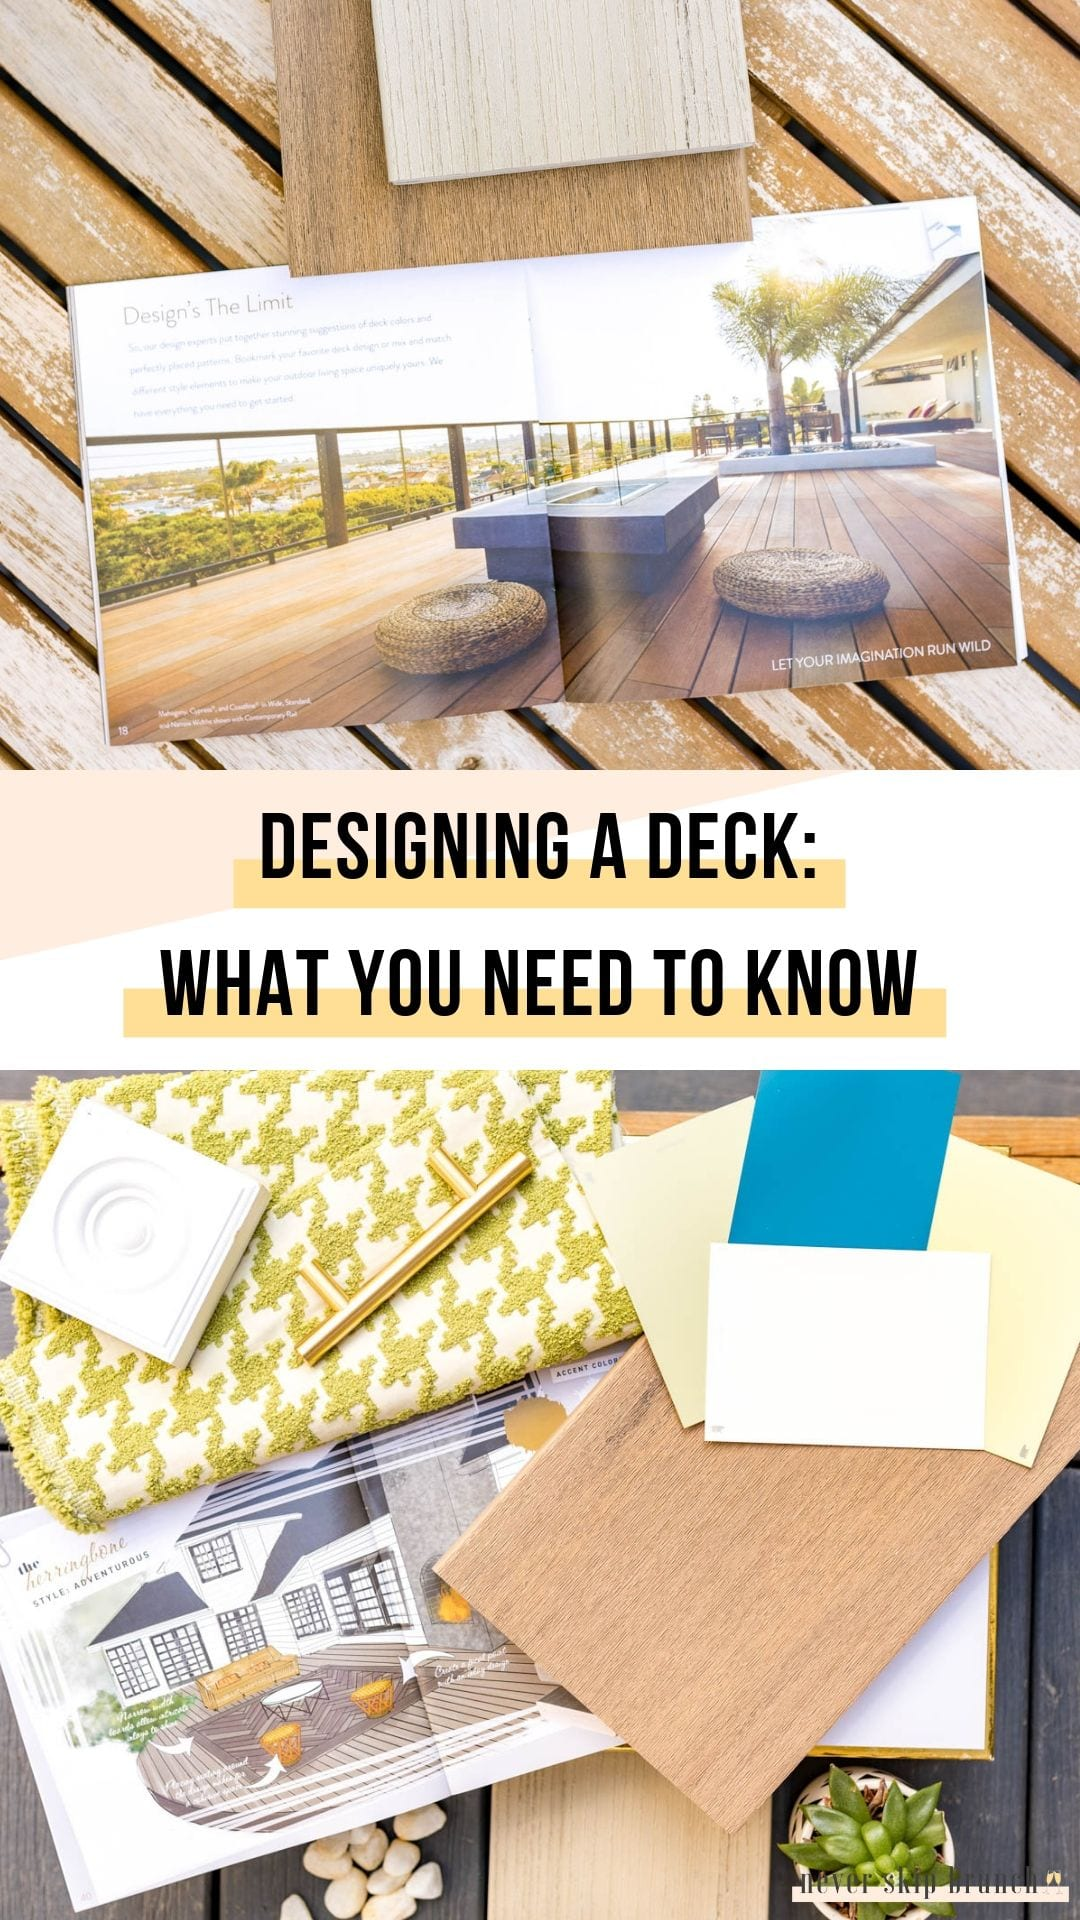 SO HELPFUL! Essential tips for designing a deck that transforms your space into an outdoor oasis | deck planning | how to design a deck | deck design ideas | deck designs | Never Skip Brunch by Cara Newhart #home #decor #deck #outdoor